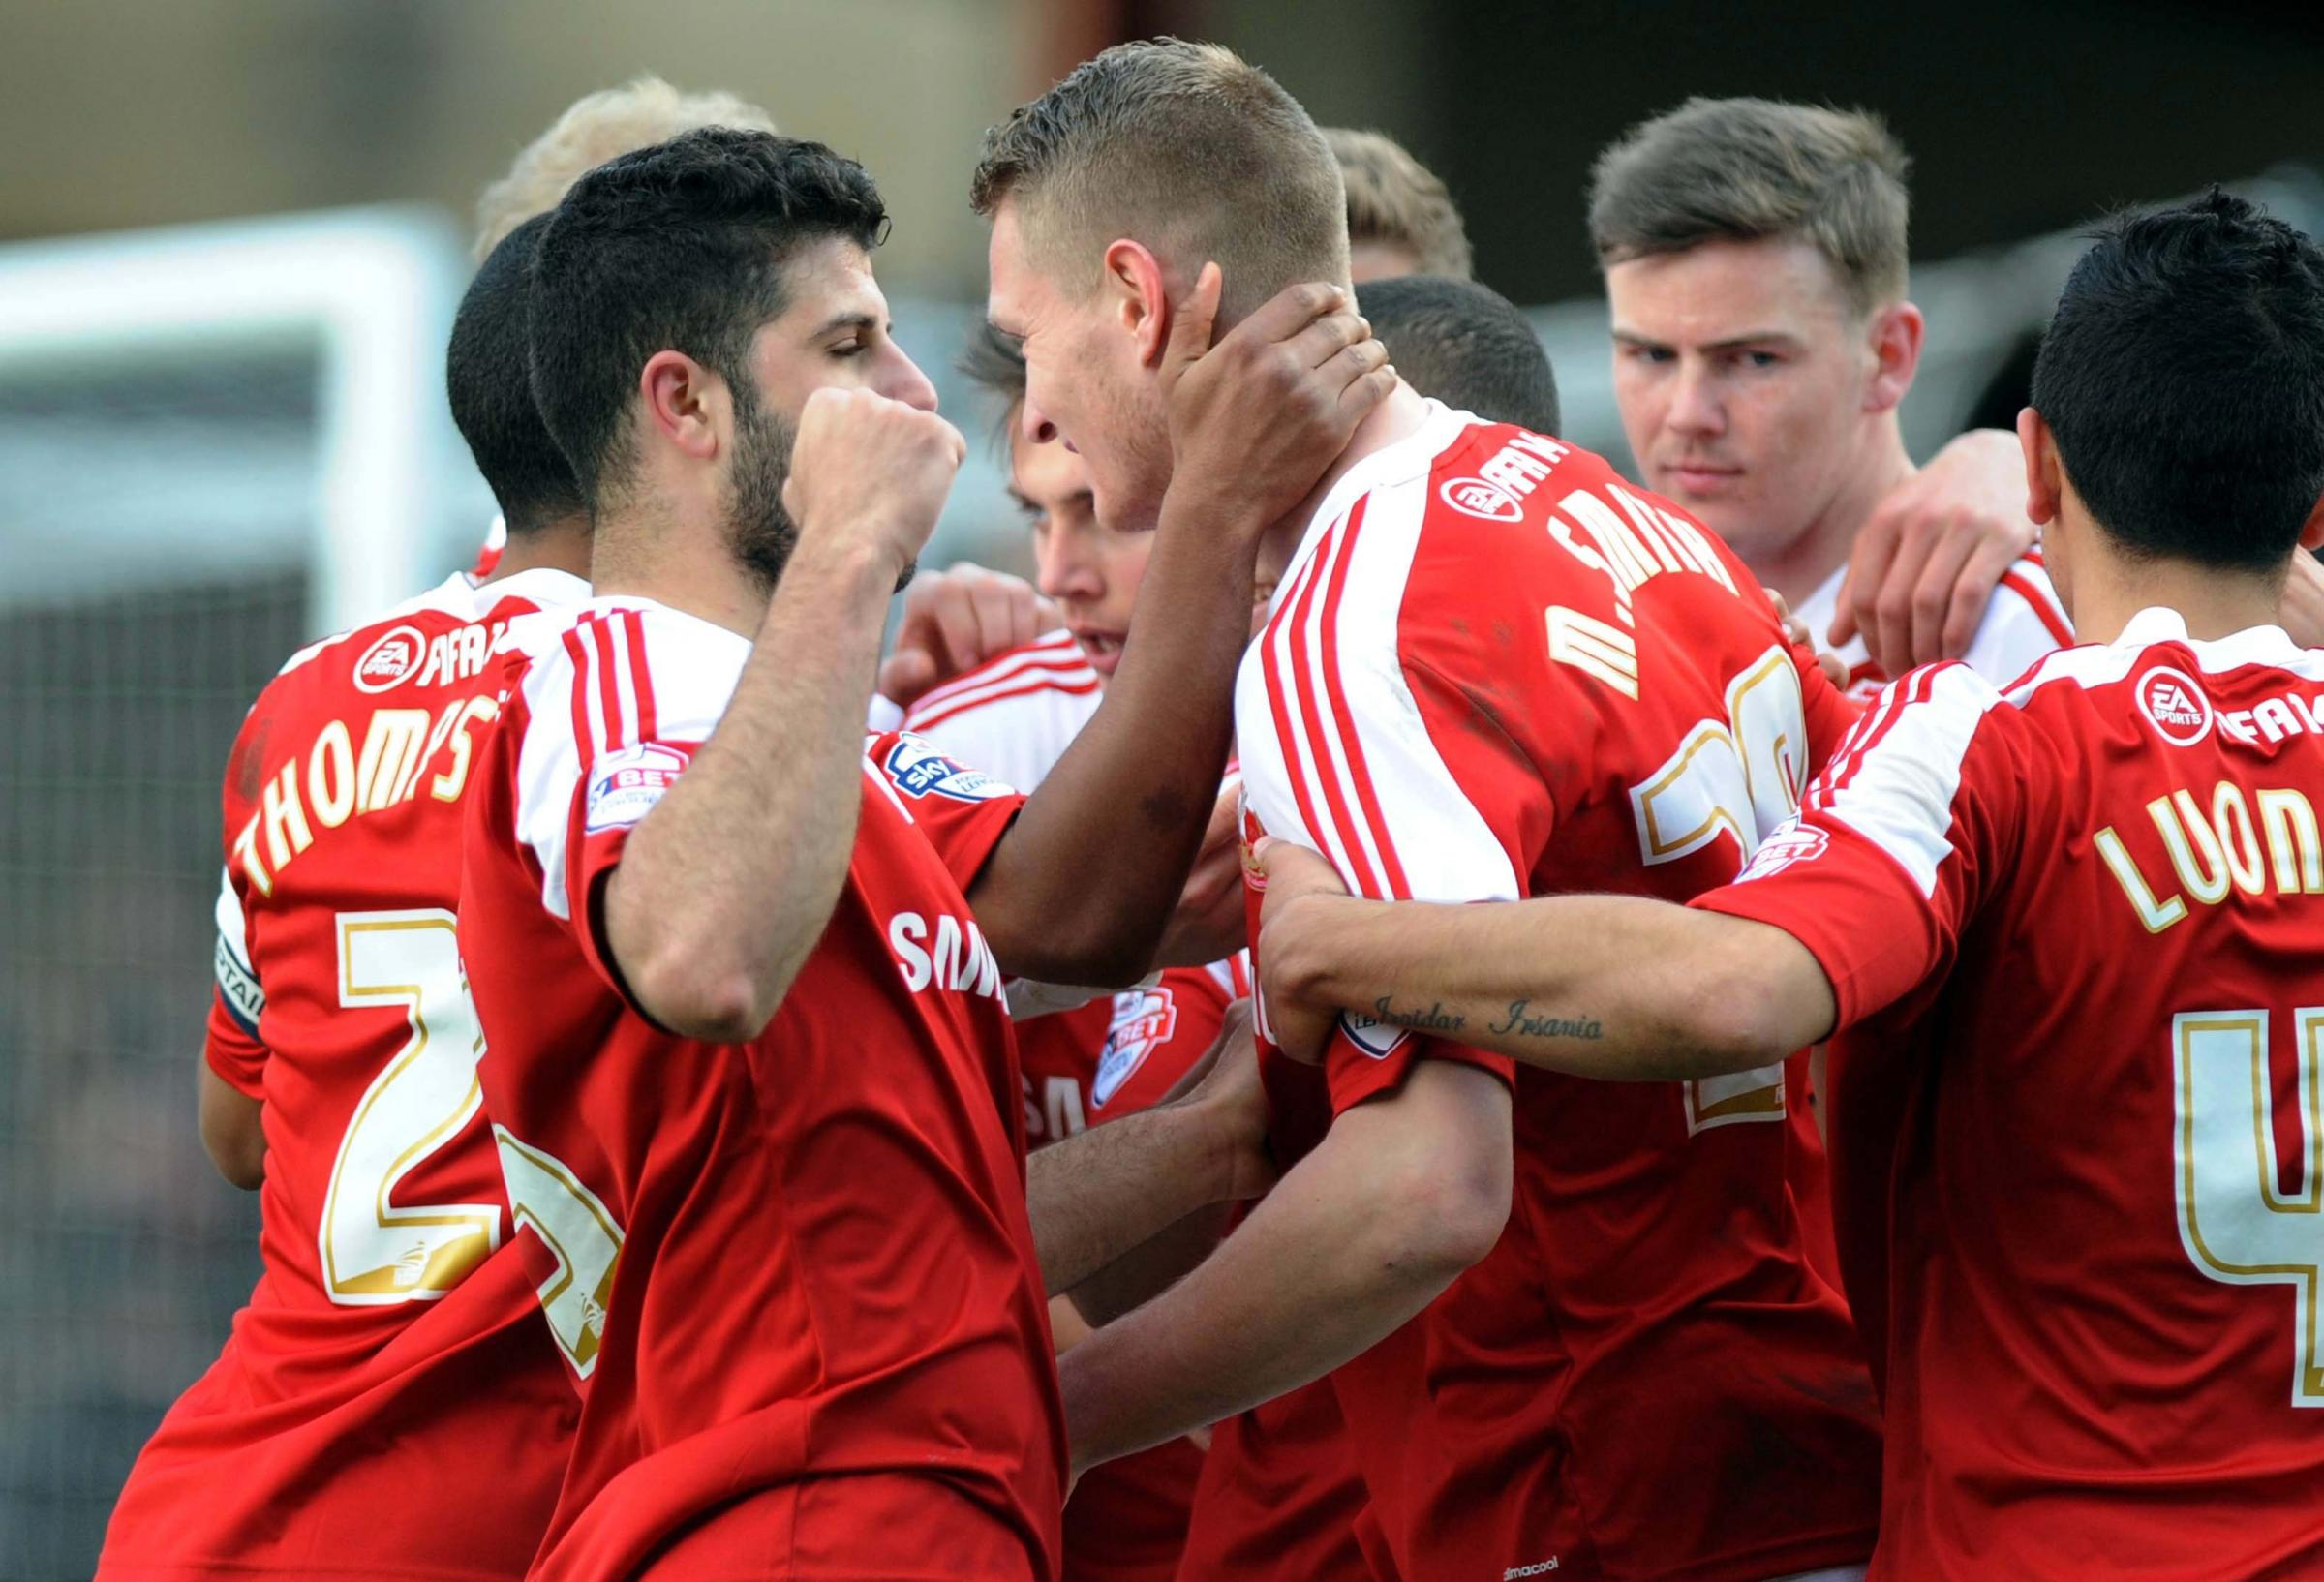 SWINDON TOWN 1 PRESTON NORTH END: Experience means nothing as Town claim home win